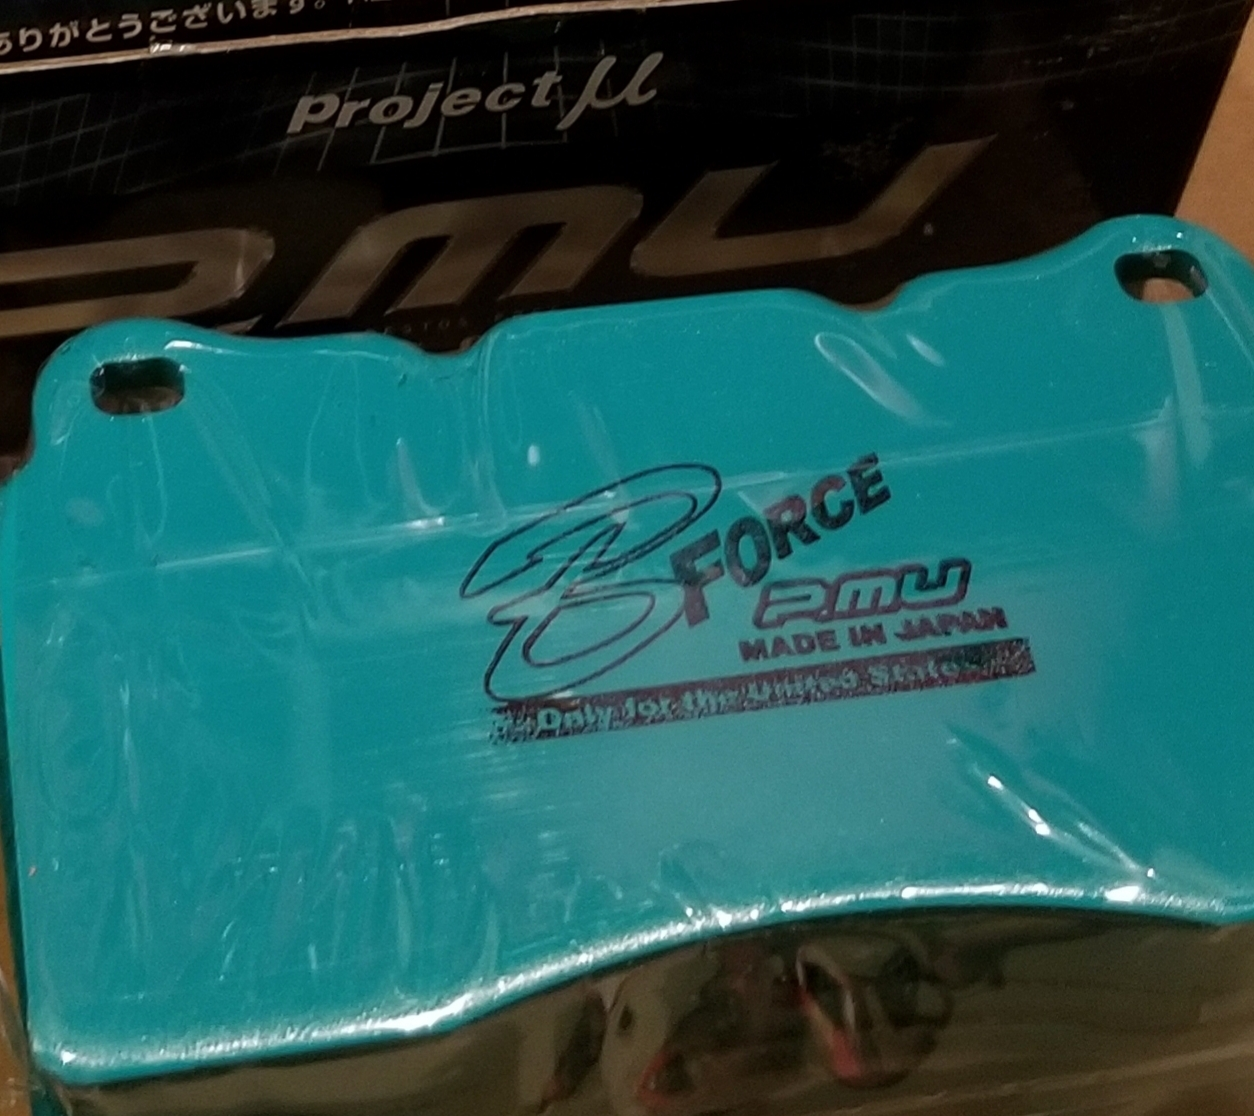 FS .Brand New Project MU street sport Front Break Pads.-20190309_175308-jpg